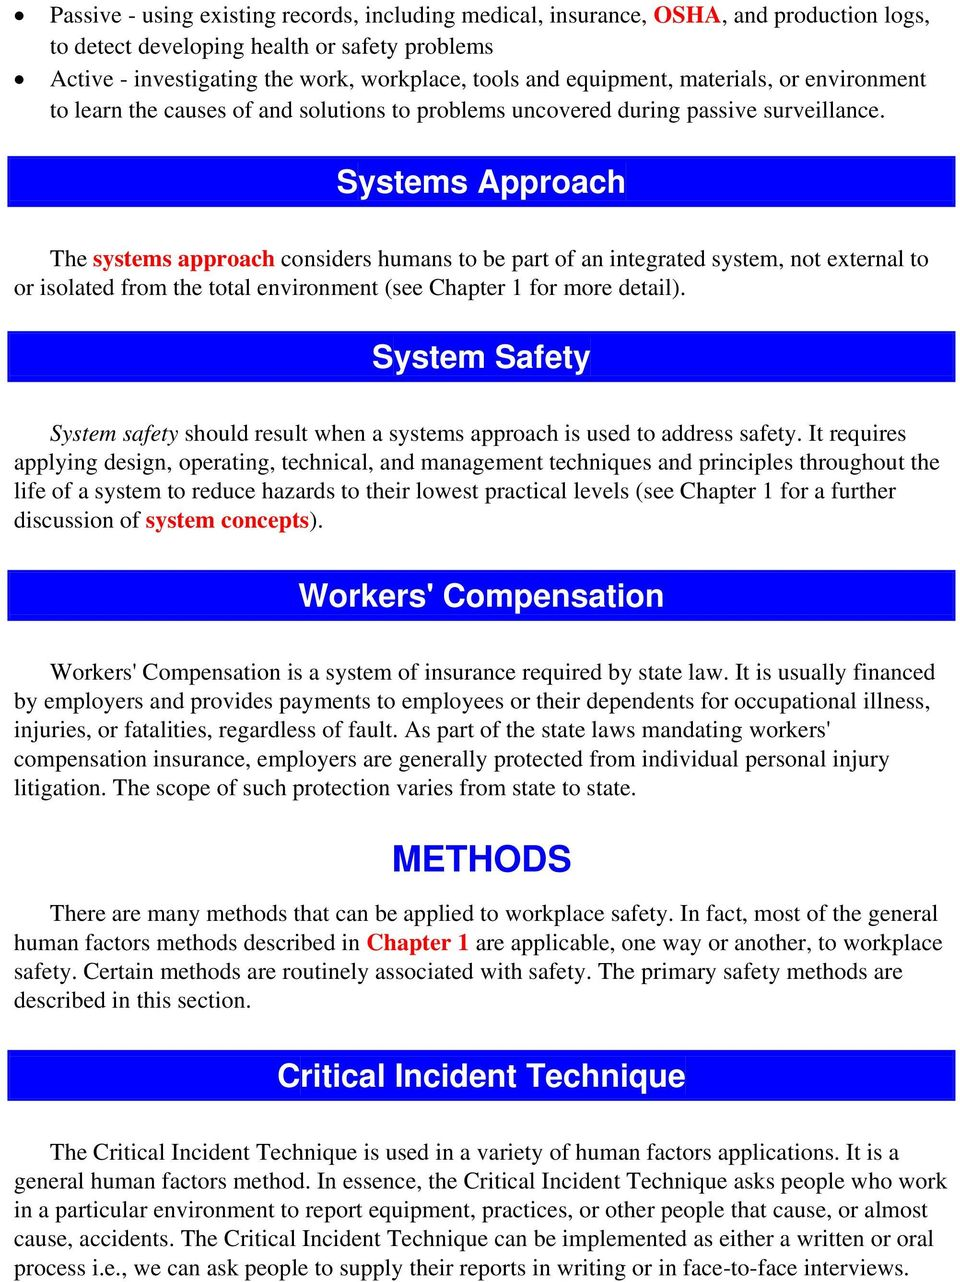 Systems Approach The systems approach considers humans to be part of an integrated system, not external to or isolated from the total environment (see Chapter 1 for more detail).